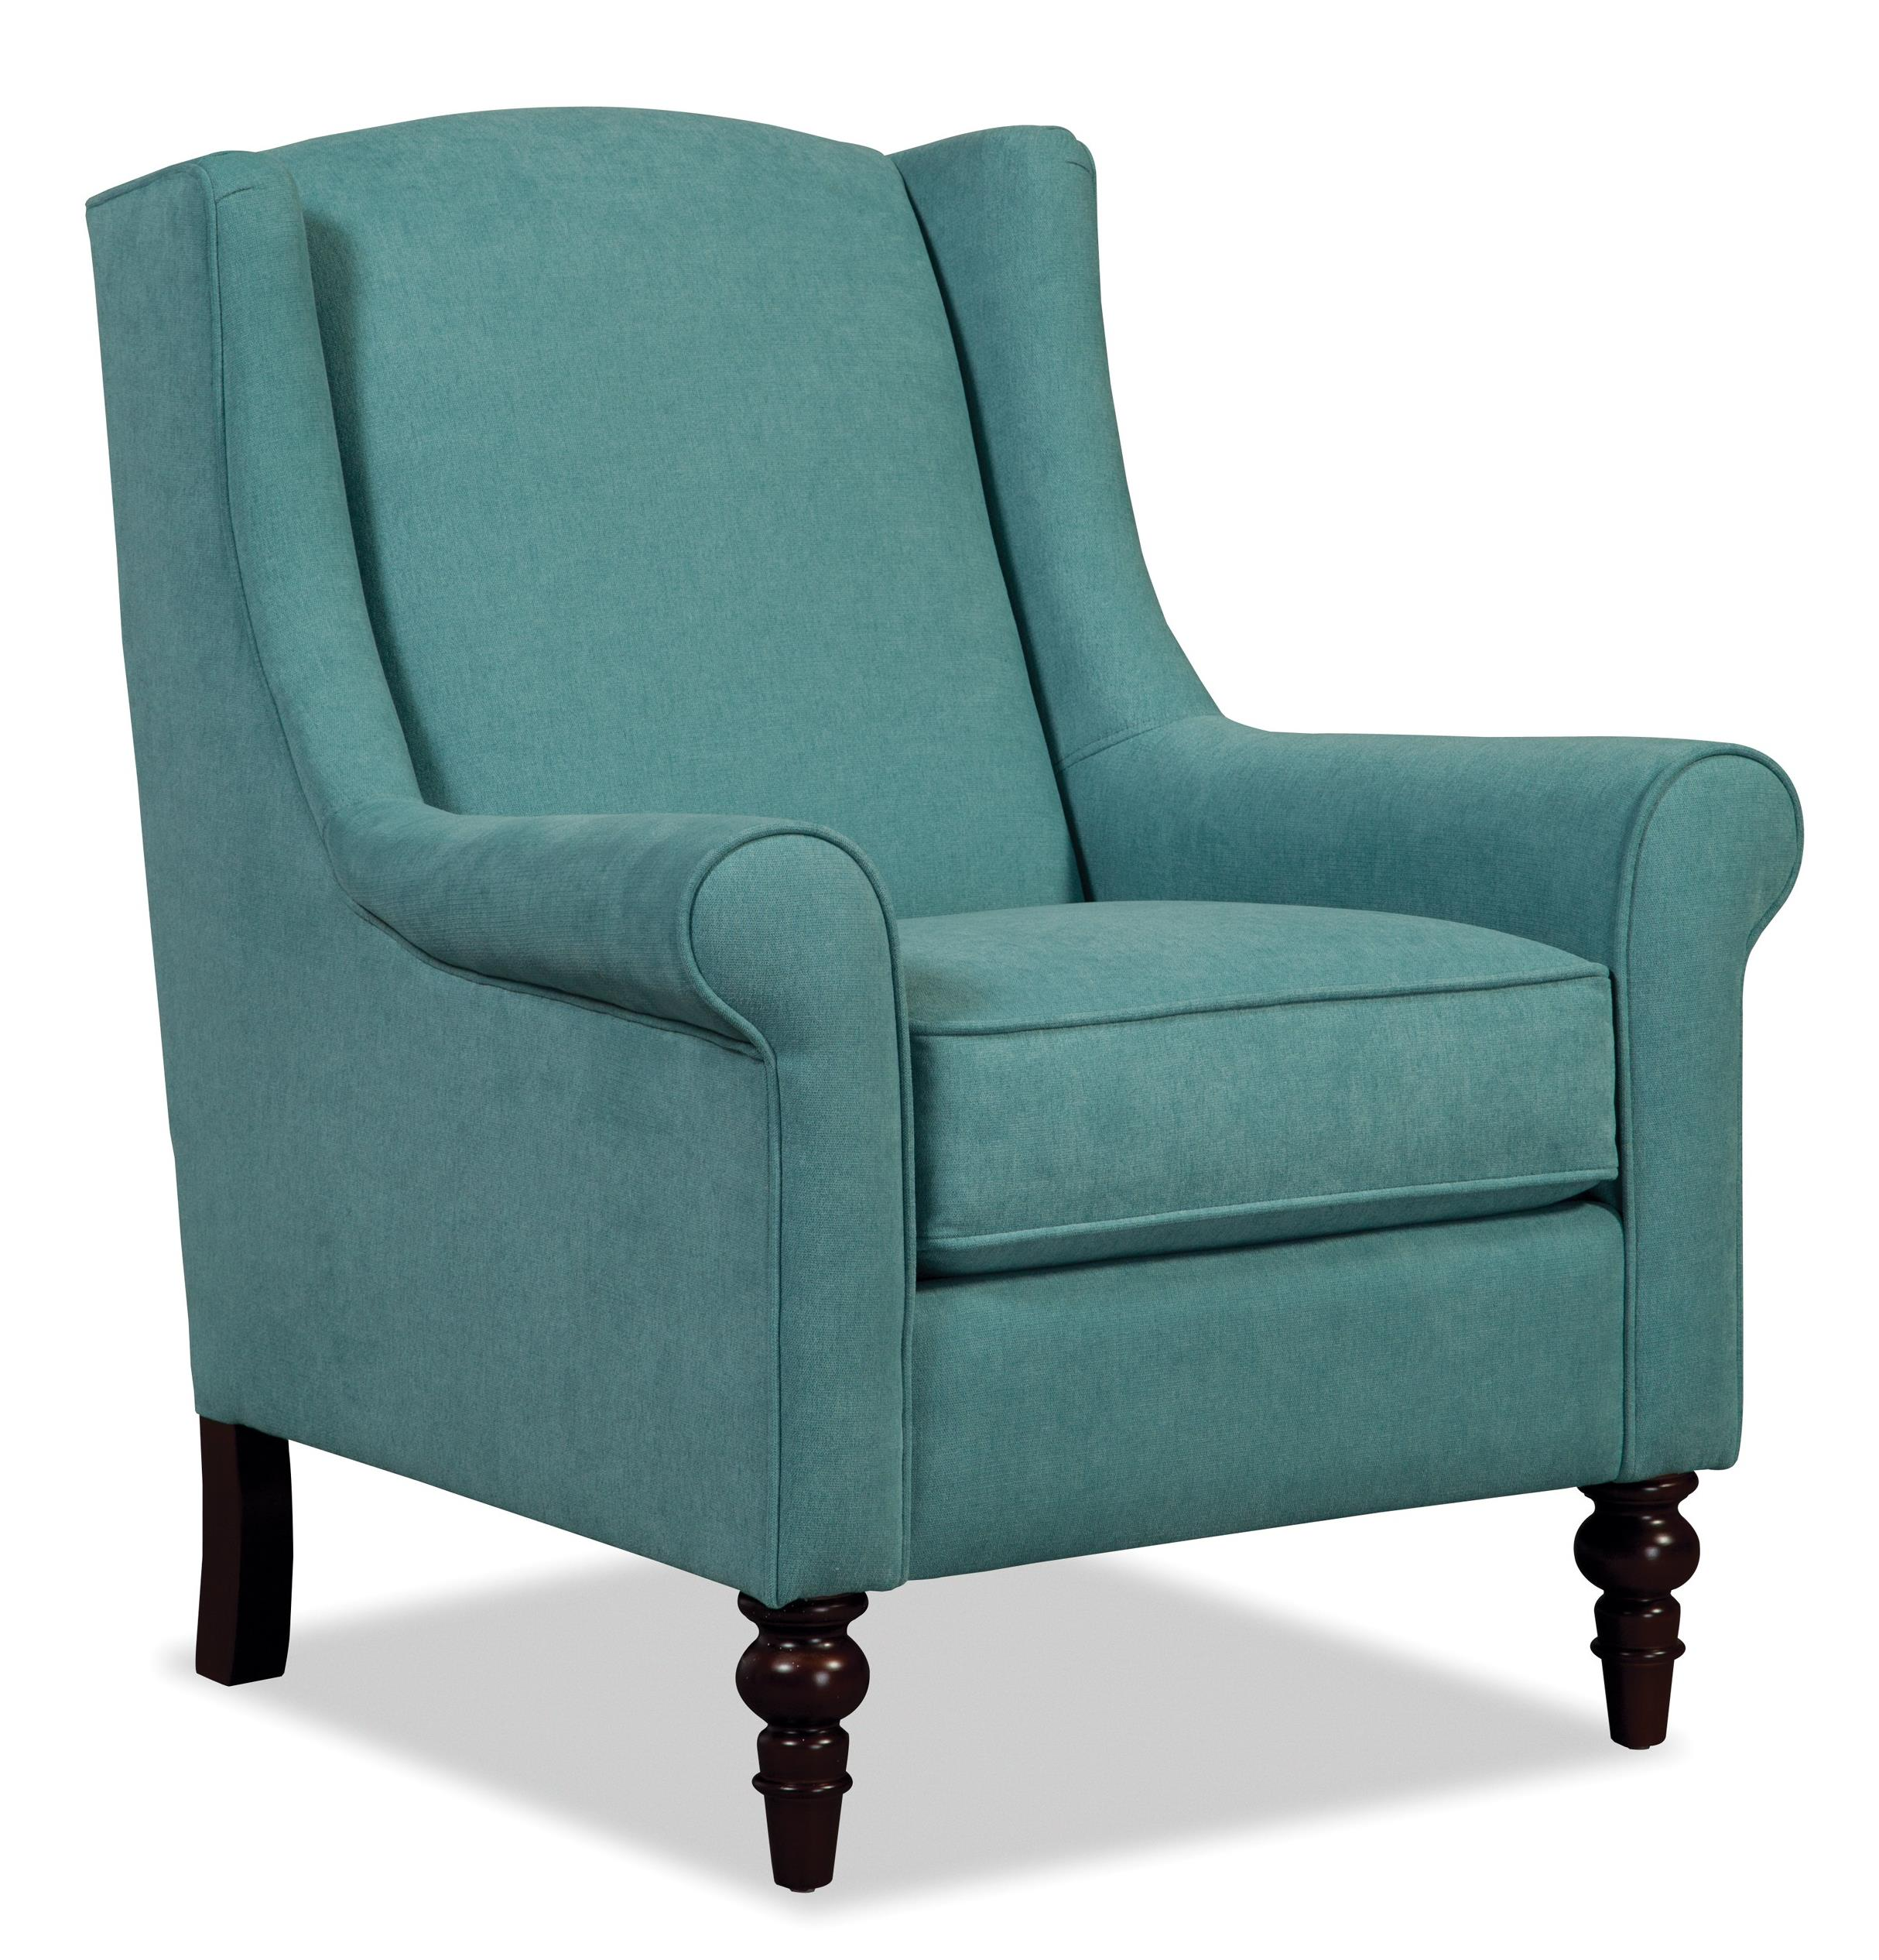 Craftmaster Accent Chairs Wing Back Chair With Traditional Turned Legs Miskelly Furniture